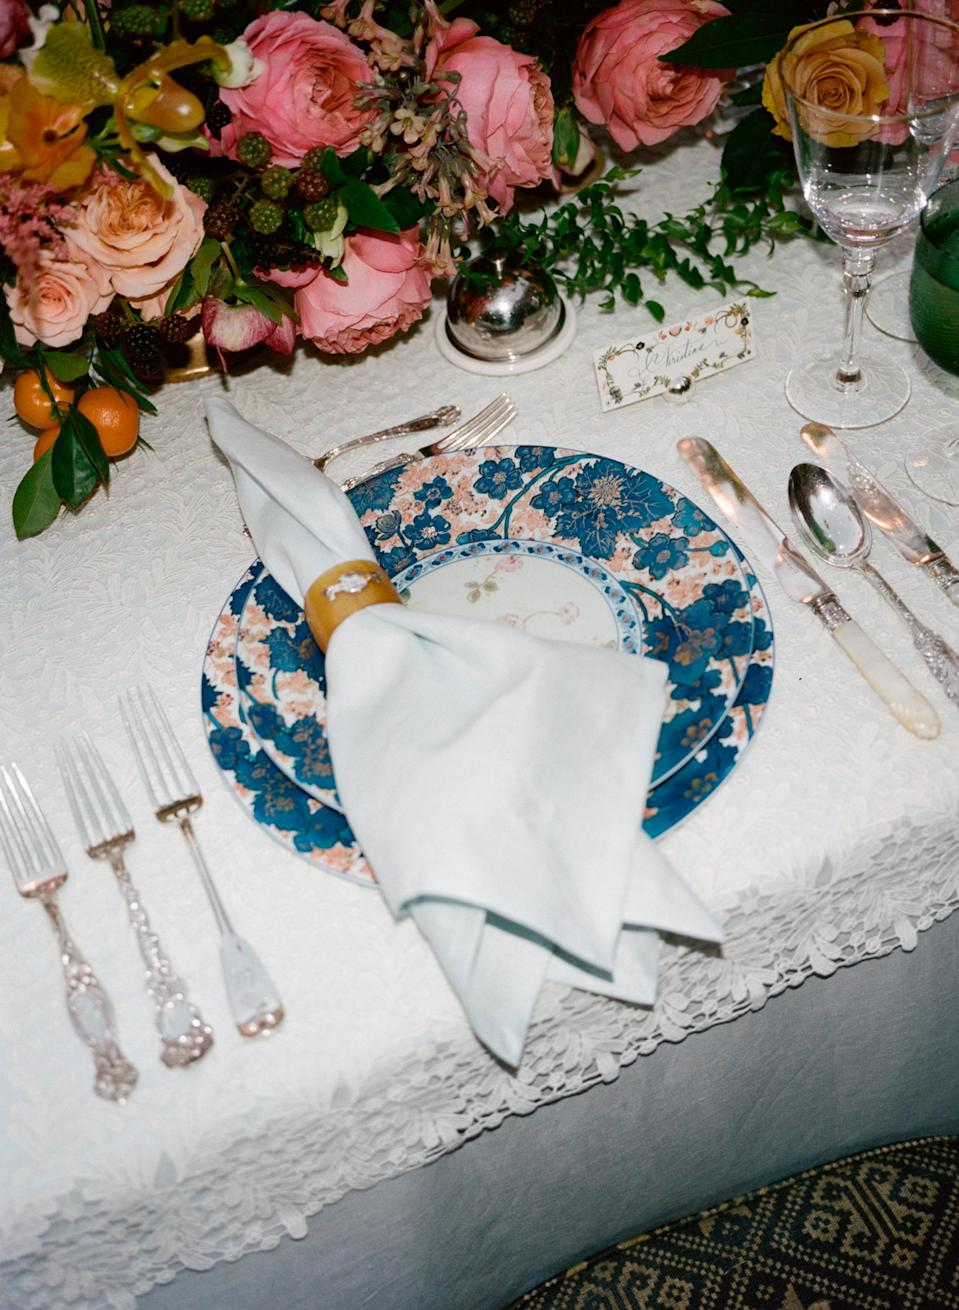 """One more view of the pieces at play on our table. Here you can better see our china, silver, and linens with the antique horn and sliver napkin rings. The napkins were embroidered with a subtle tonal """"H"""" for our last name, Herbert."""